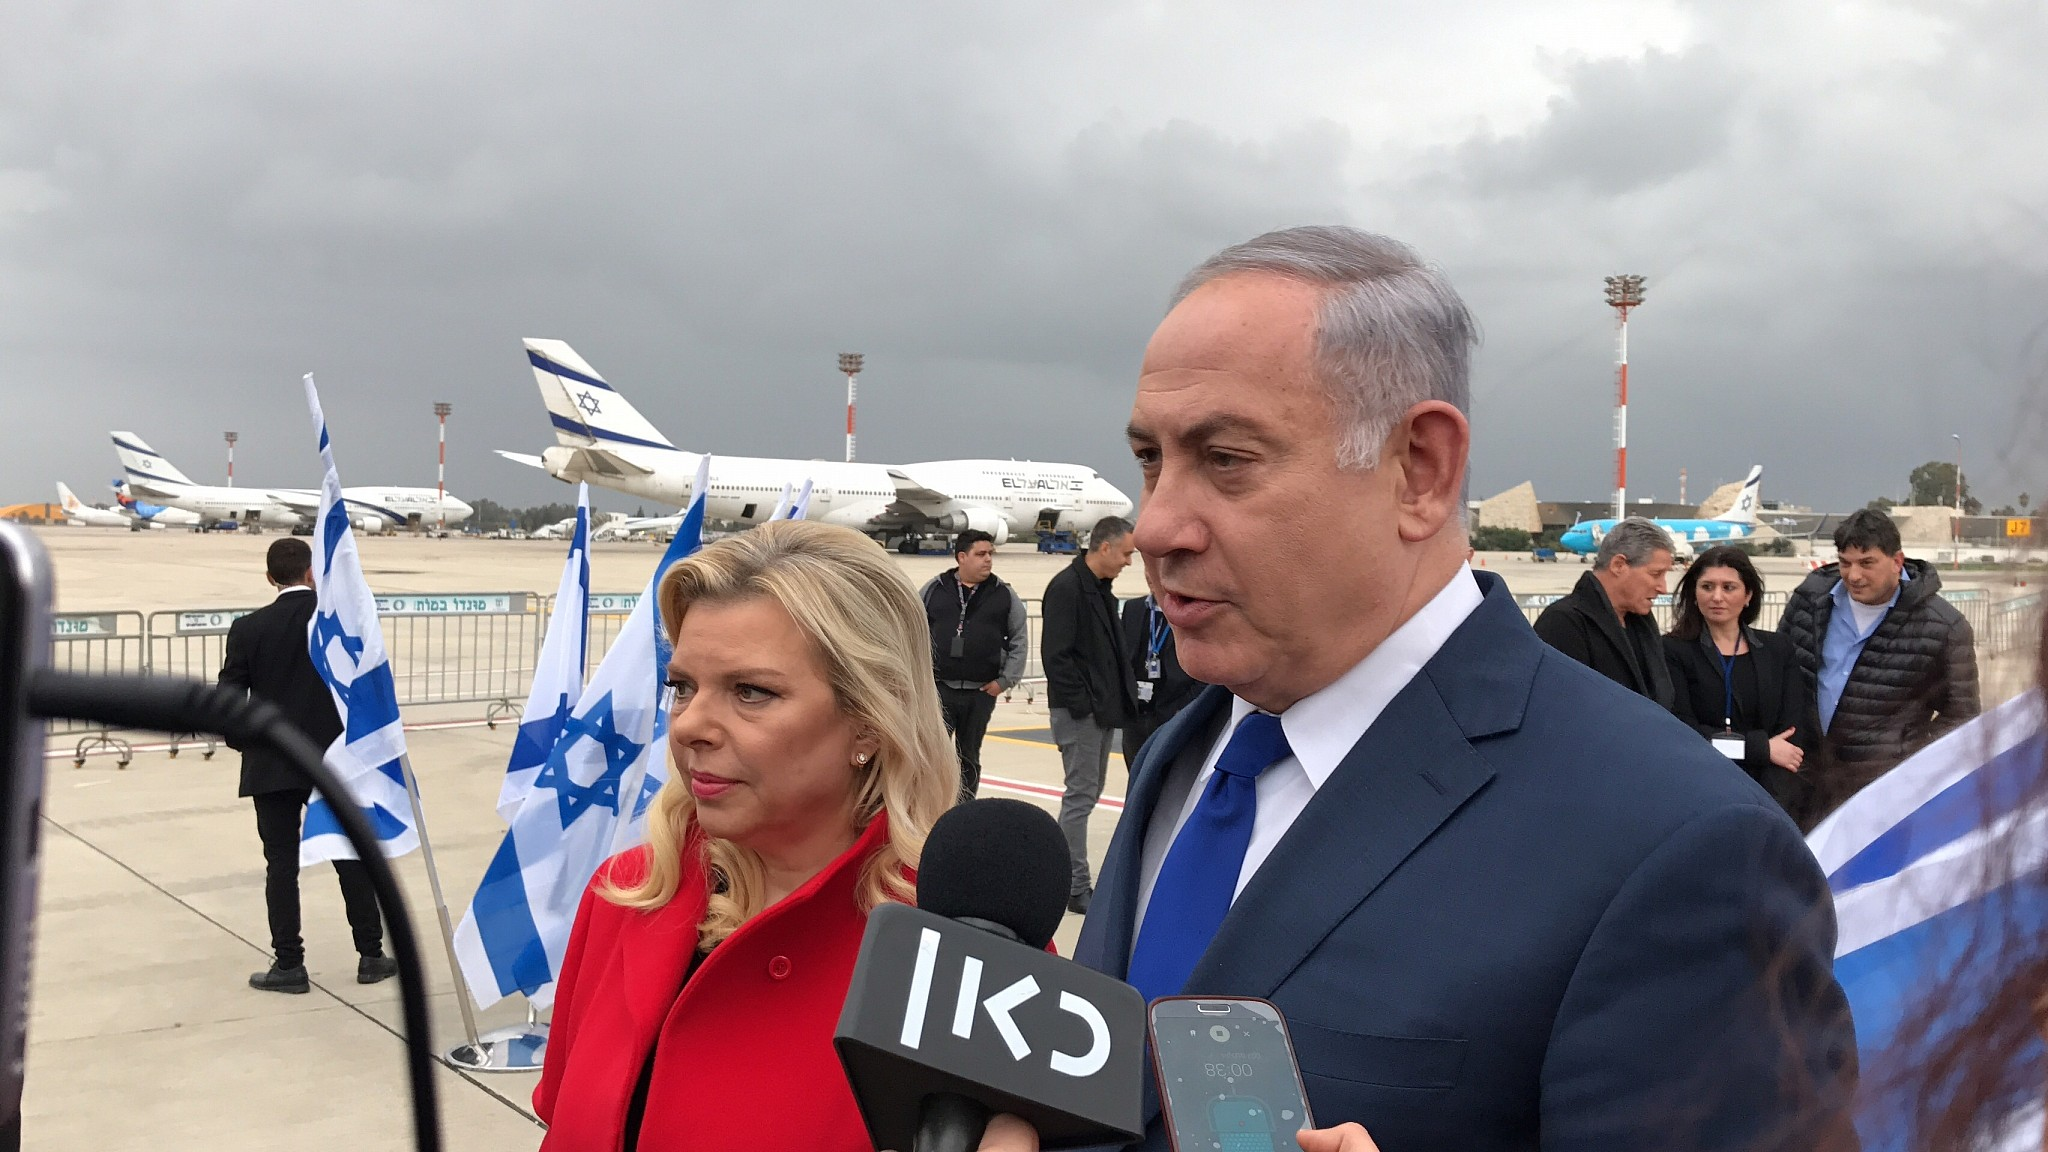 Netanyahu: Jerusalem has to be Israel's capital